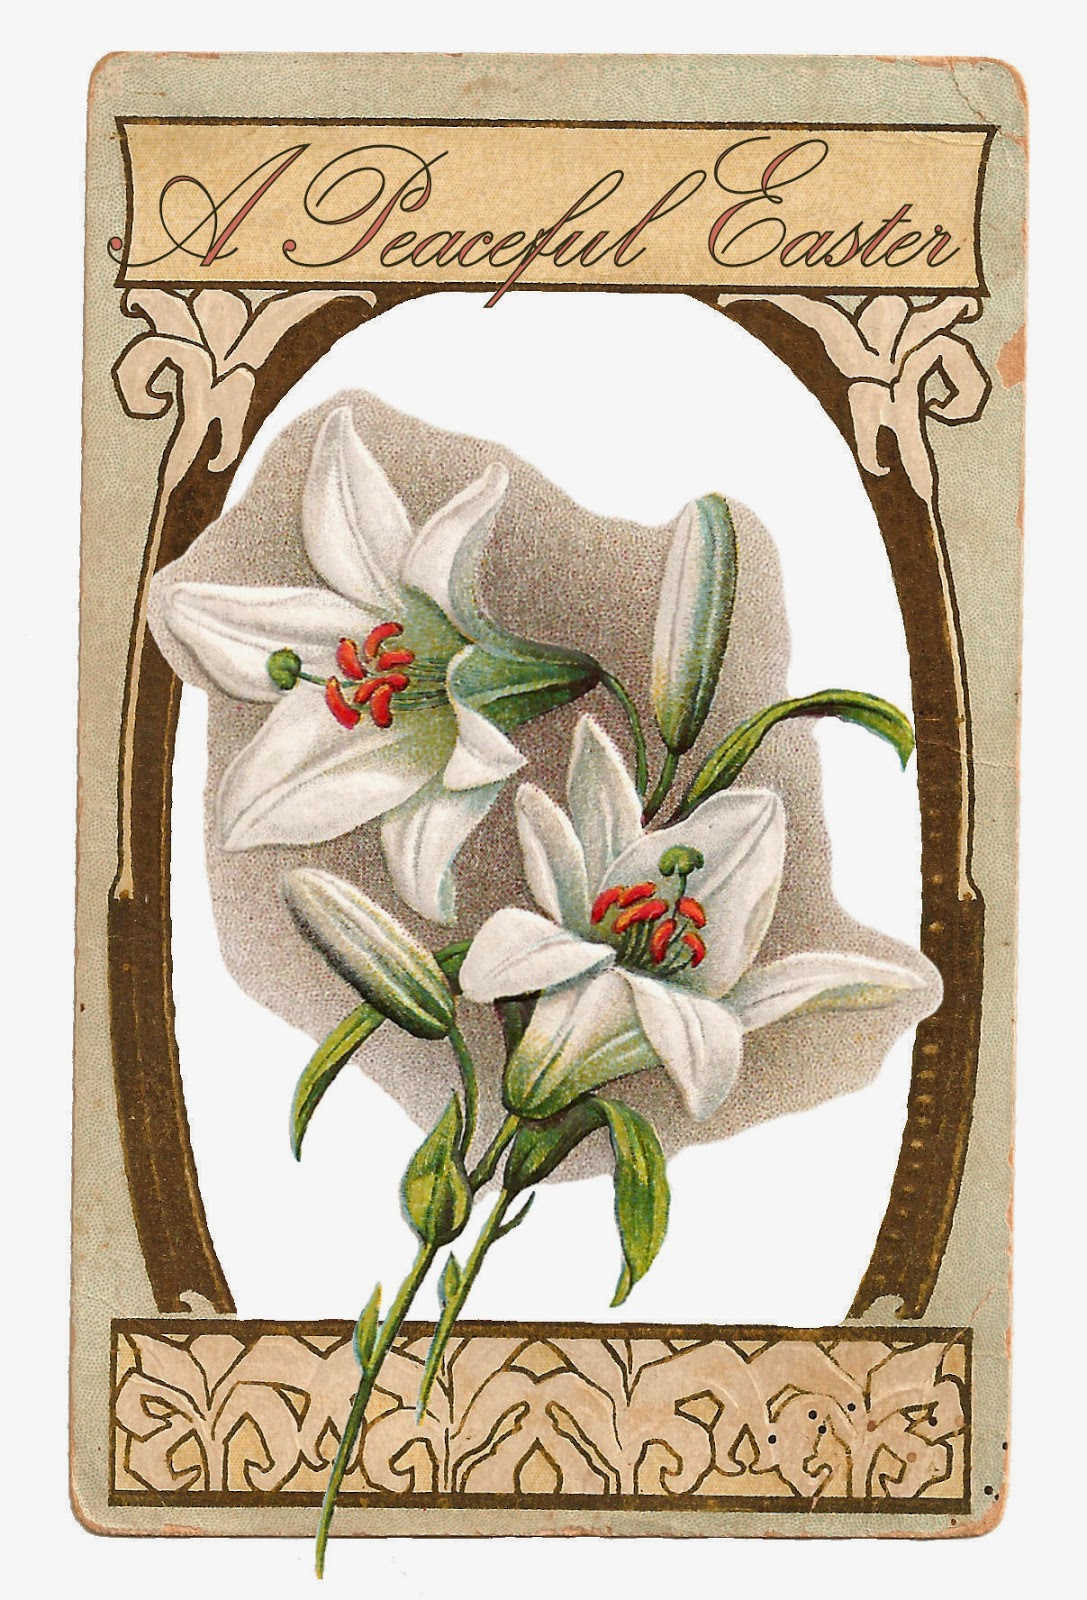 http://3.bp.blogspot.com/-gtfo-FQNbcY/VR186zhvBMI/AAAAAAAAWF4/1bNBpStYm5U/s1600/easter-card-lily-peaceful-1.jpg